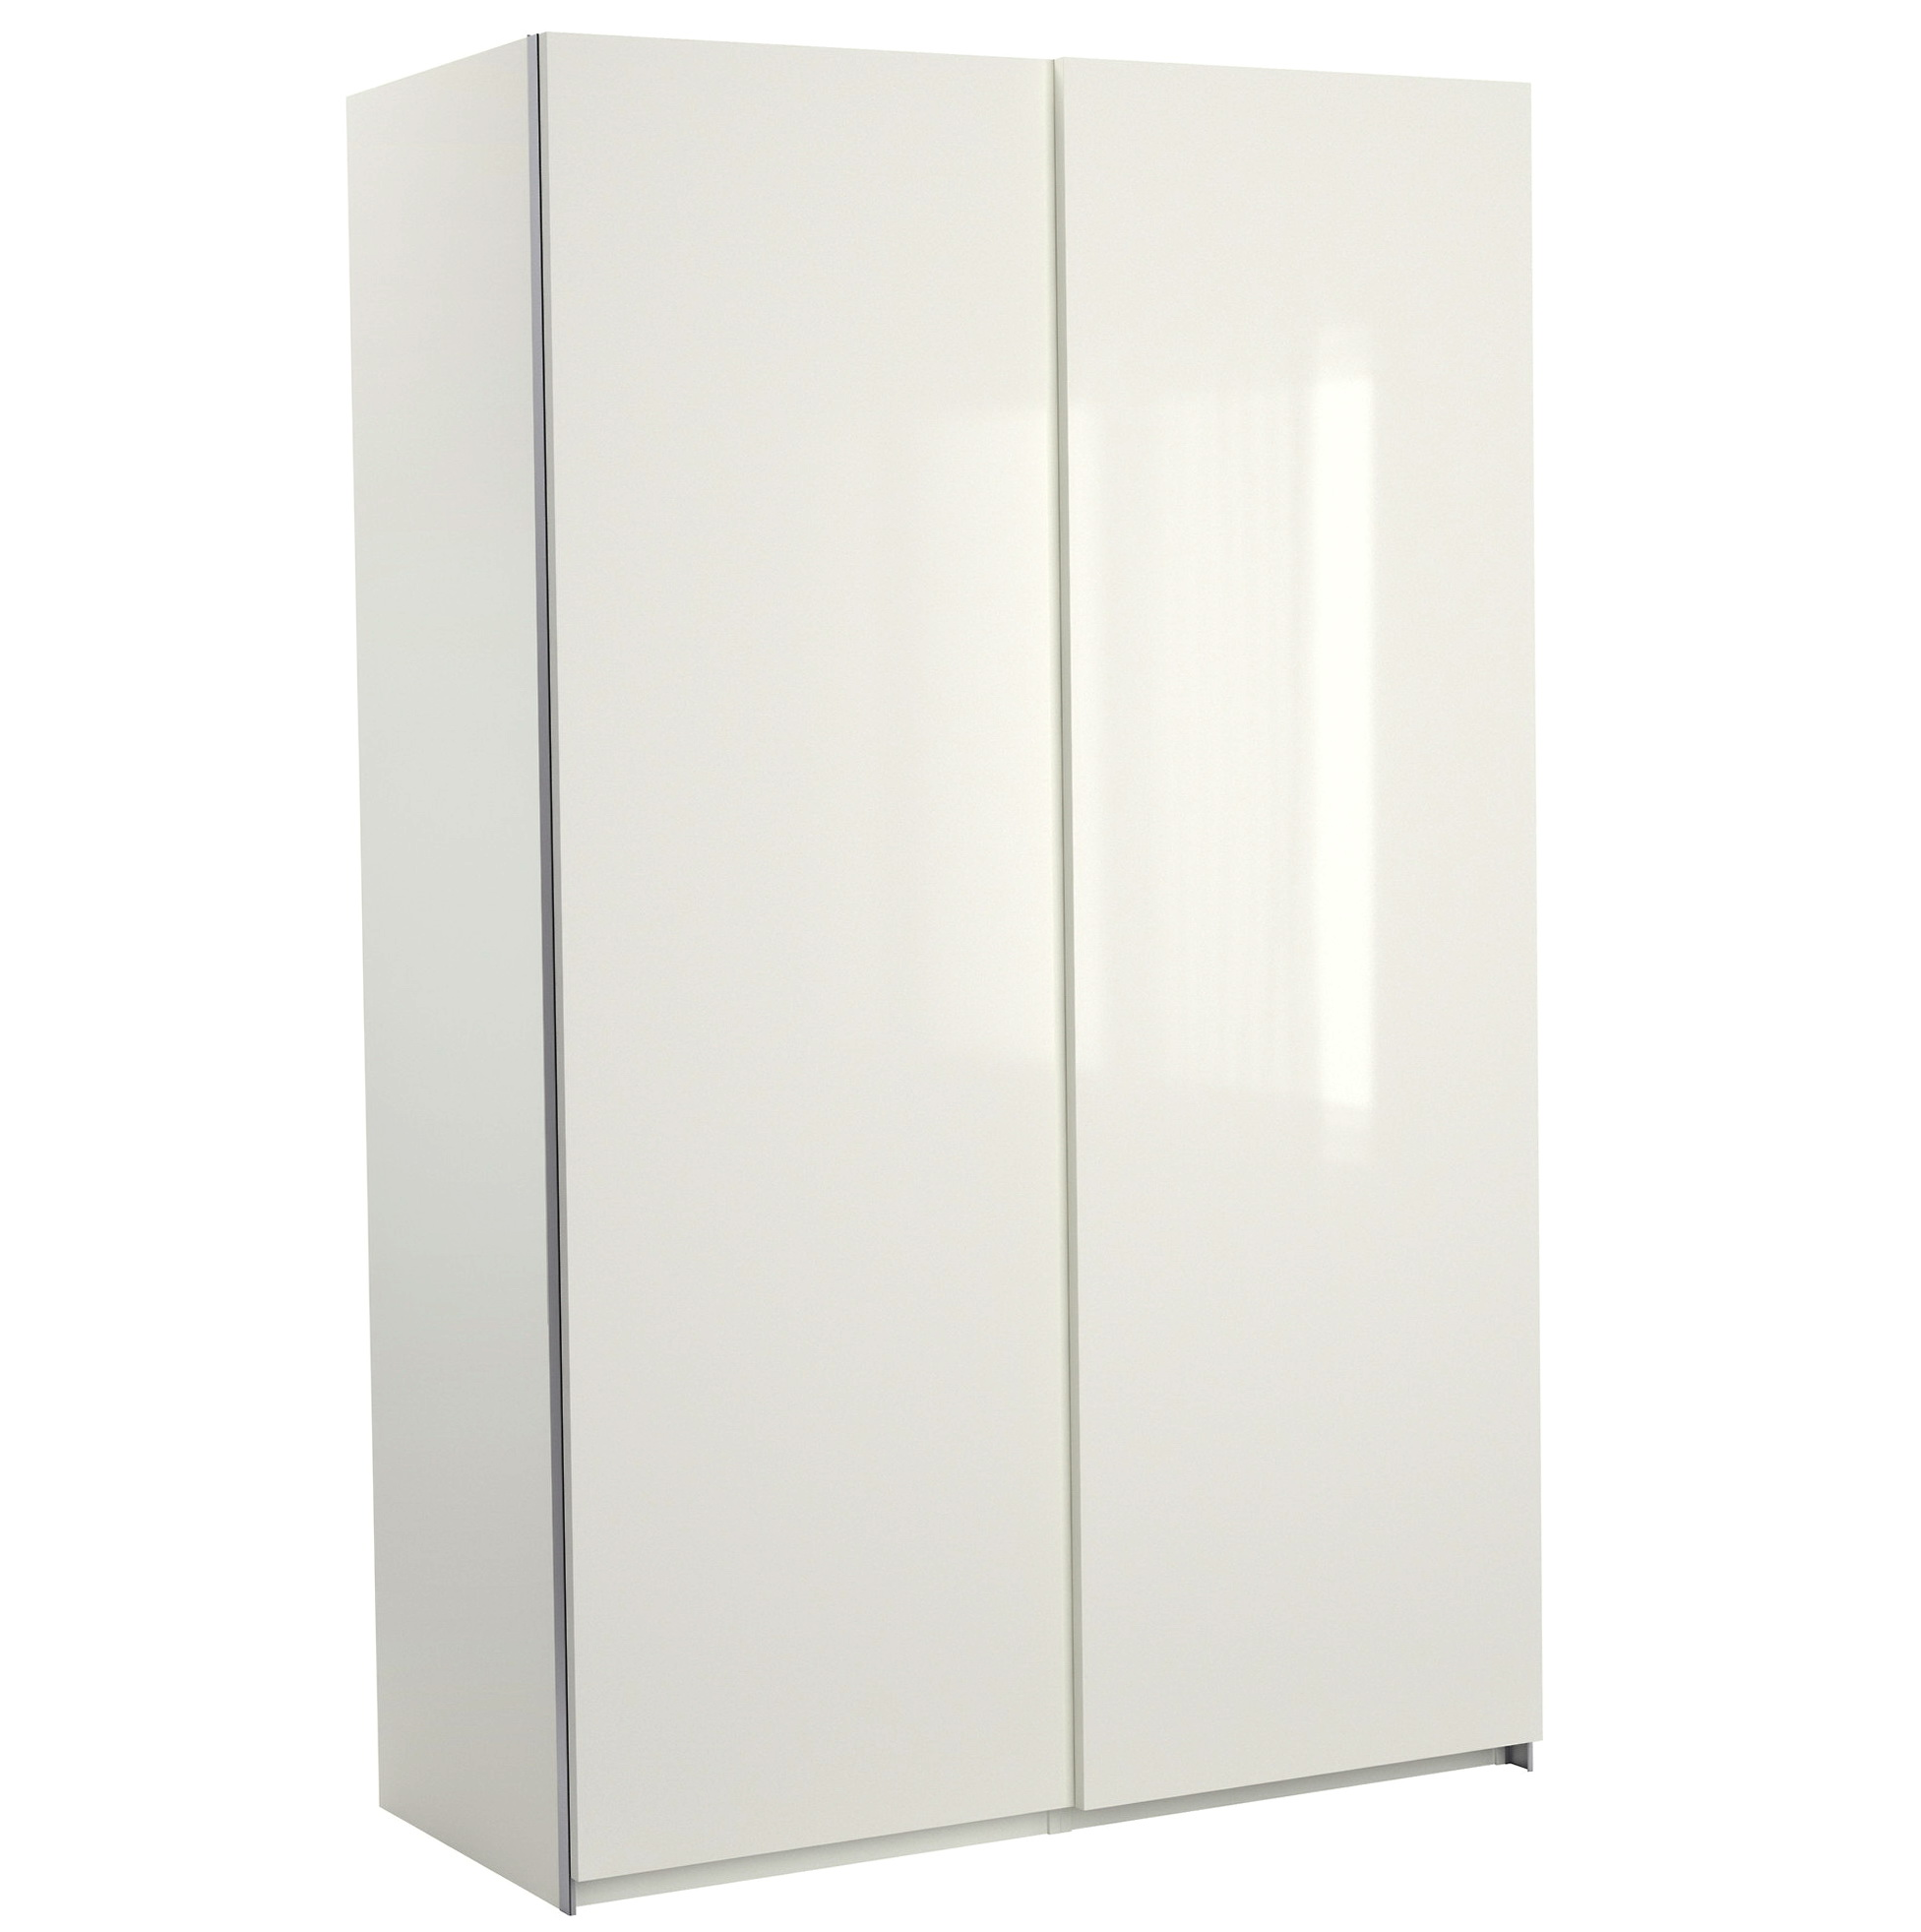 Ikea Closet Systems Prices